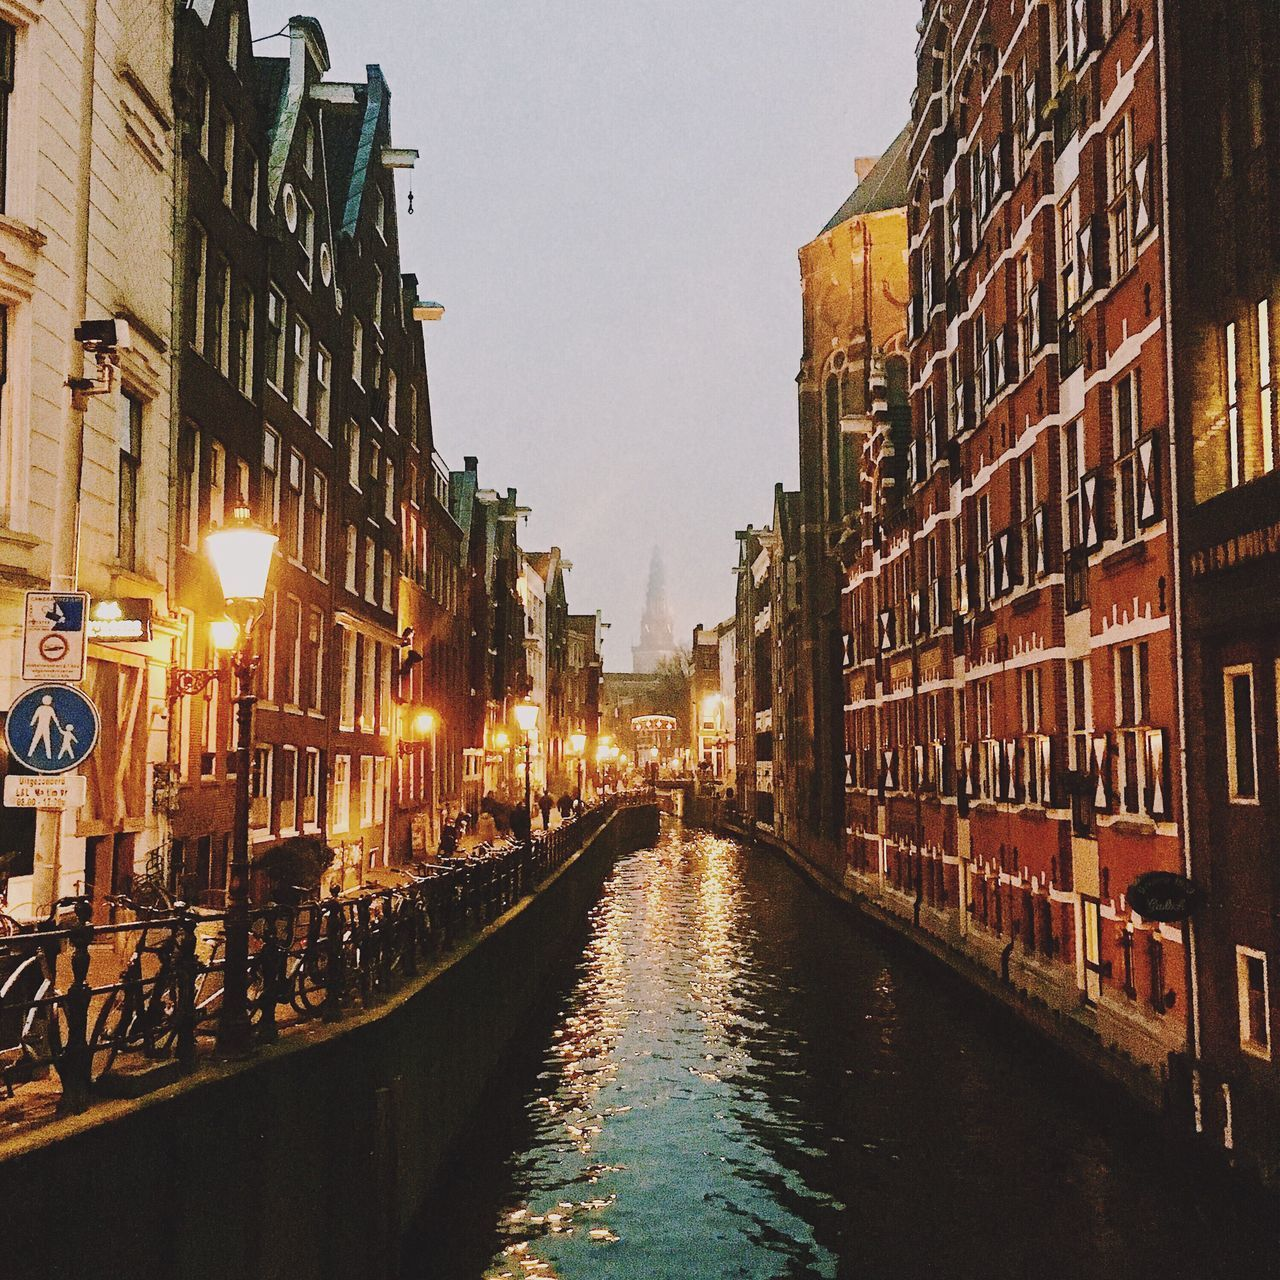 architecture, building exterior, built structure, canal, illuminated, travel destinations, water, no people, city, outdoors, day, sky